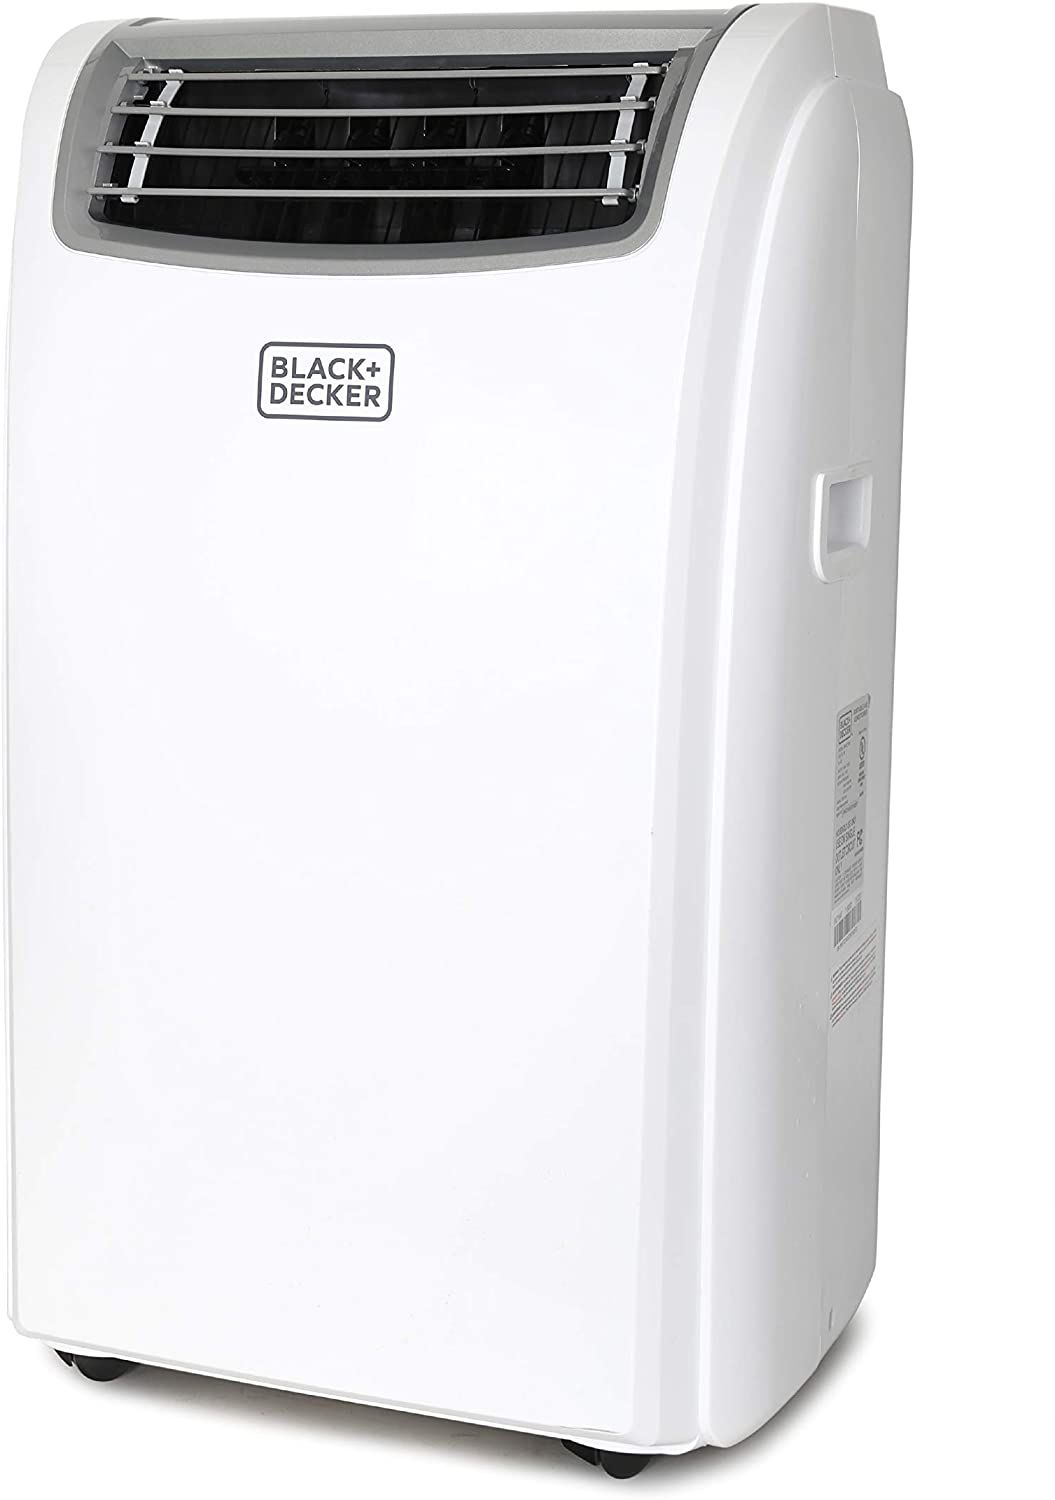 BLACK+DECKER BPACT14HWT Portable Air Conditioner with Heat